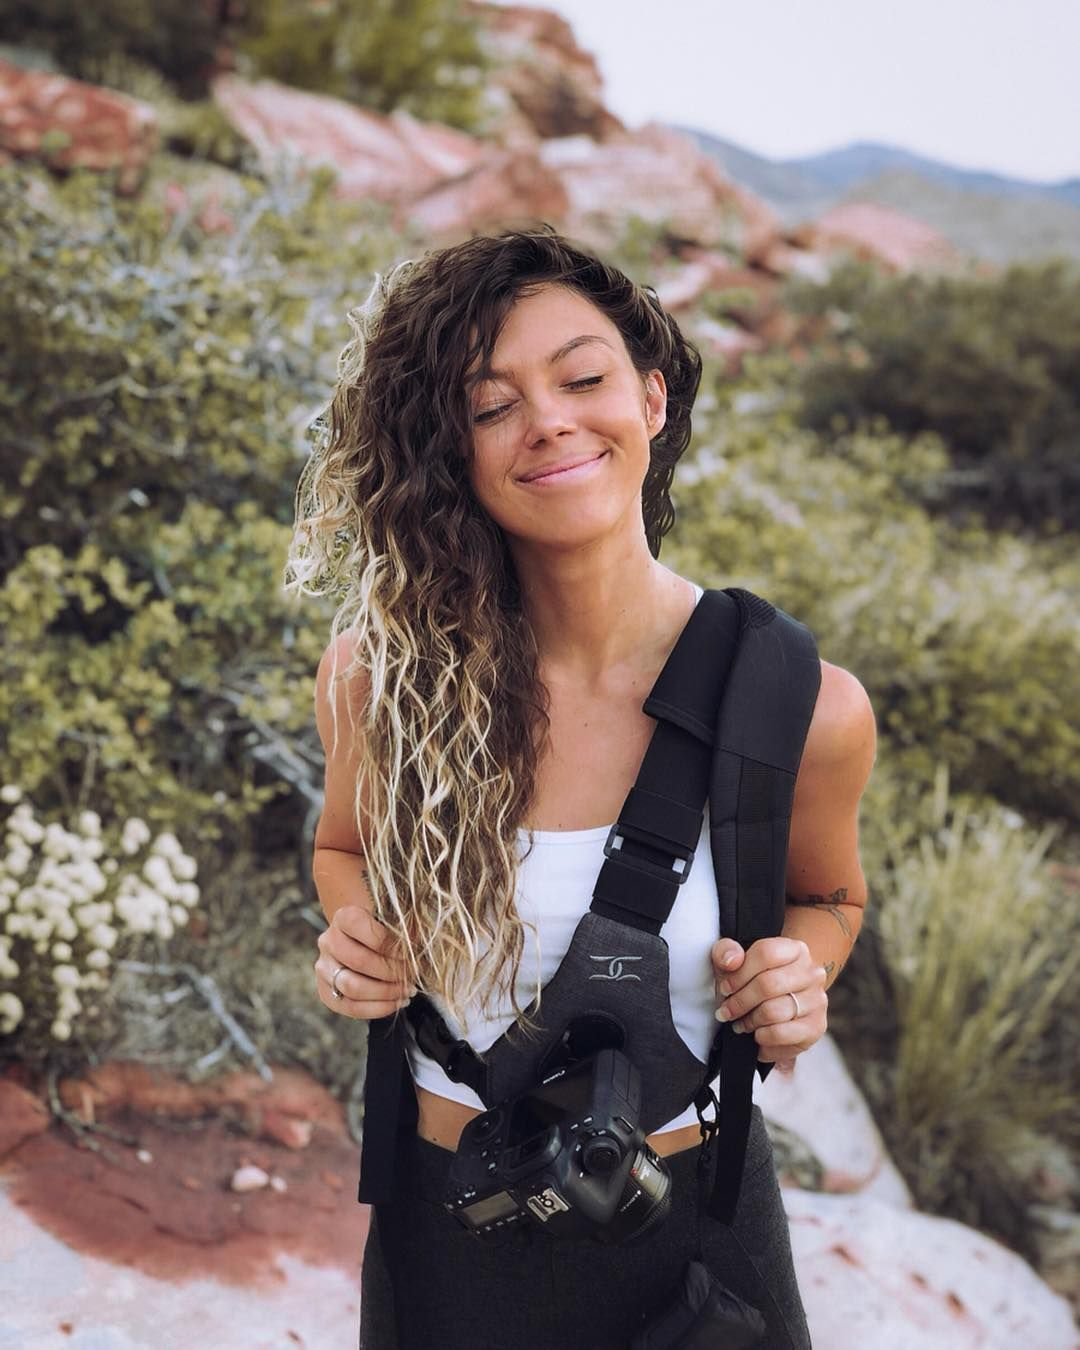 Young person with a camera smiling outdoors